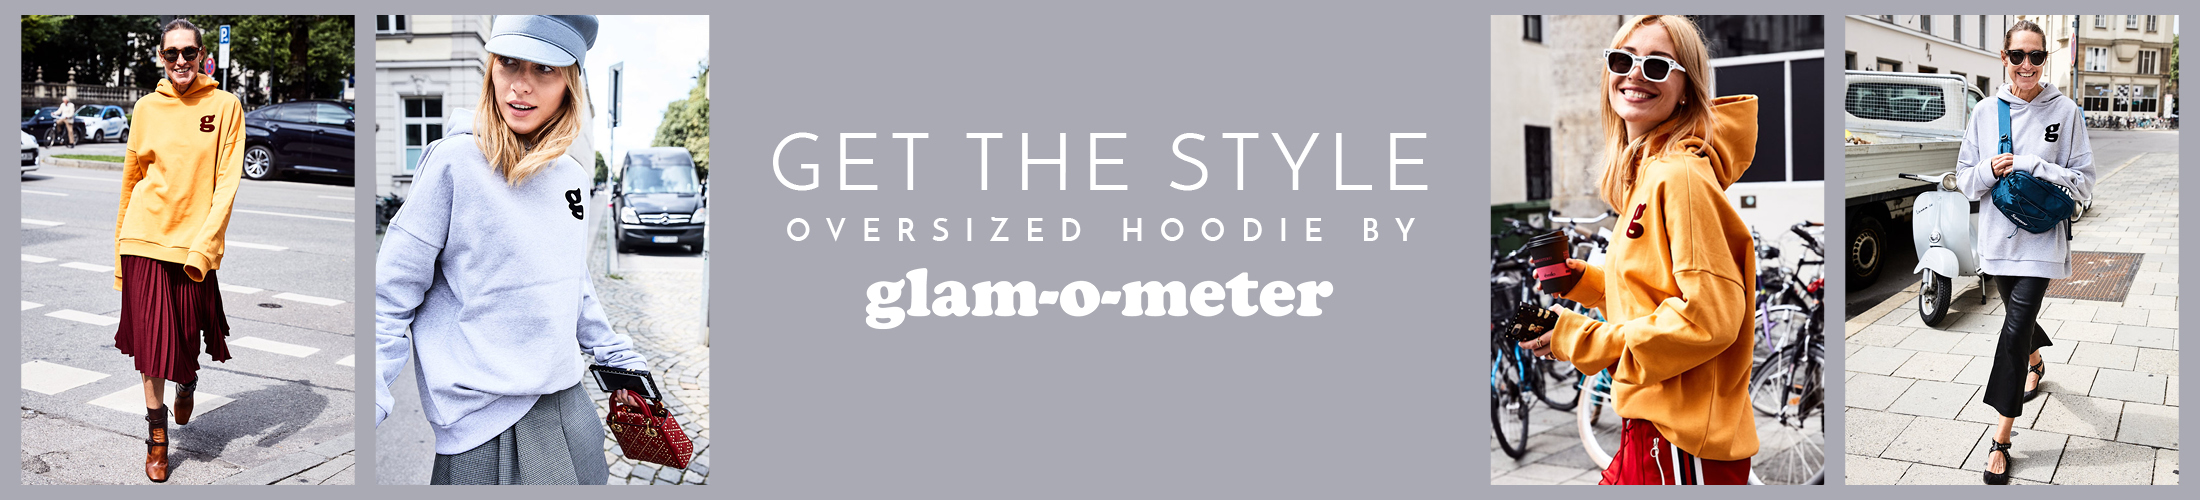 Get the Style: Oversized Hoodie